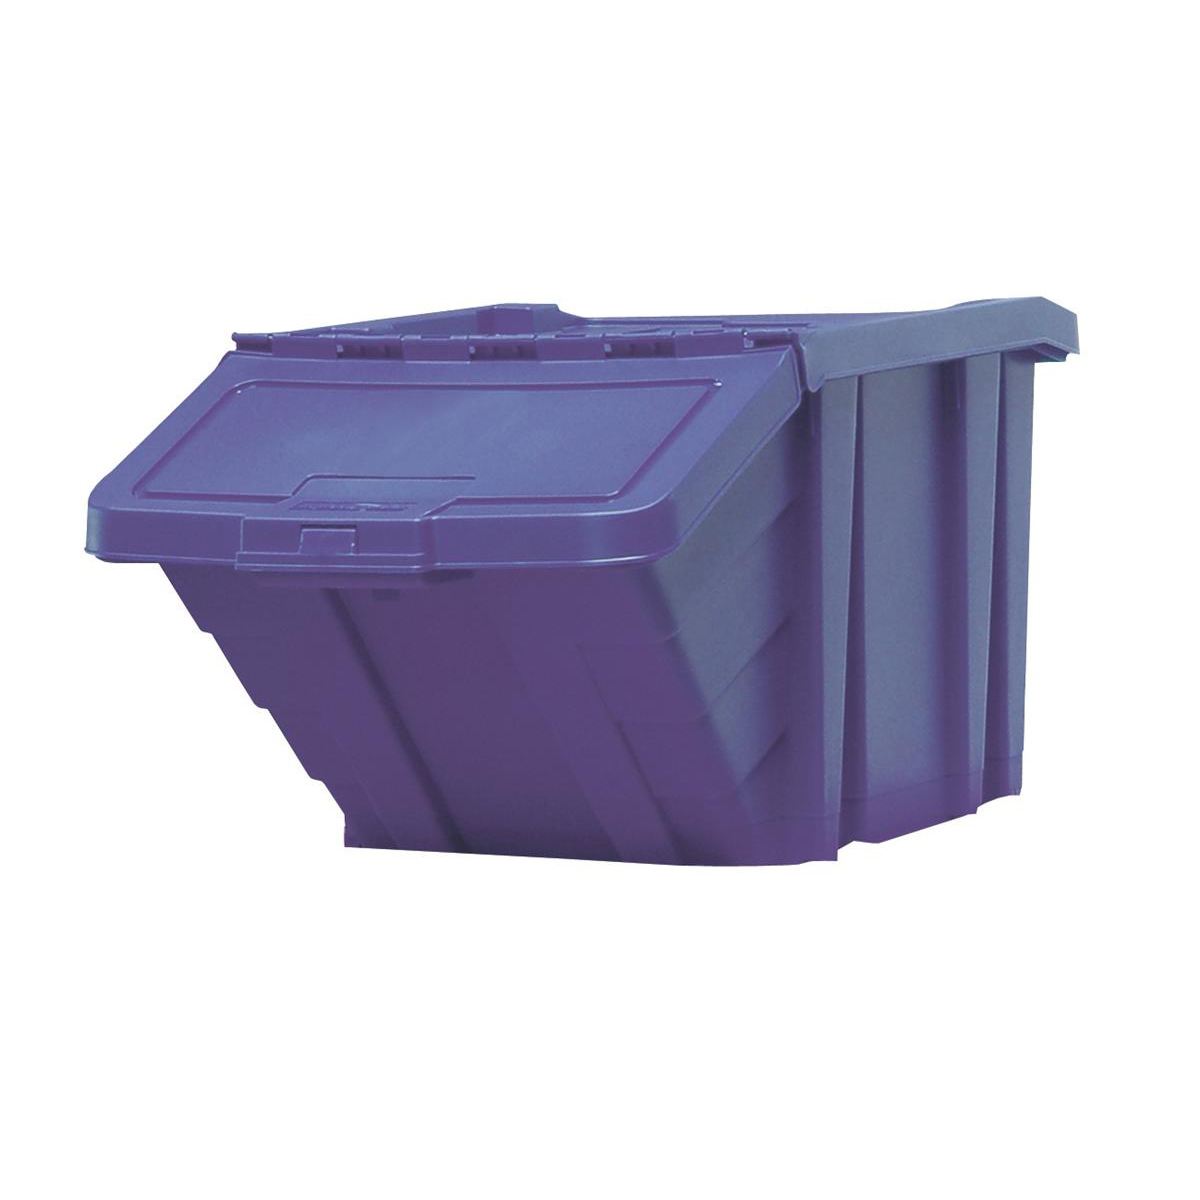 Recycling Bins Recycle Storage Bin and Lid Blue 400x635x345mm